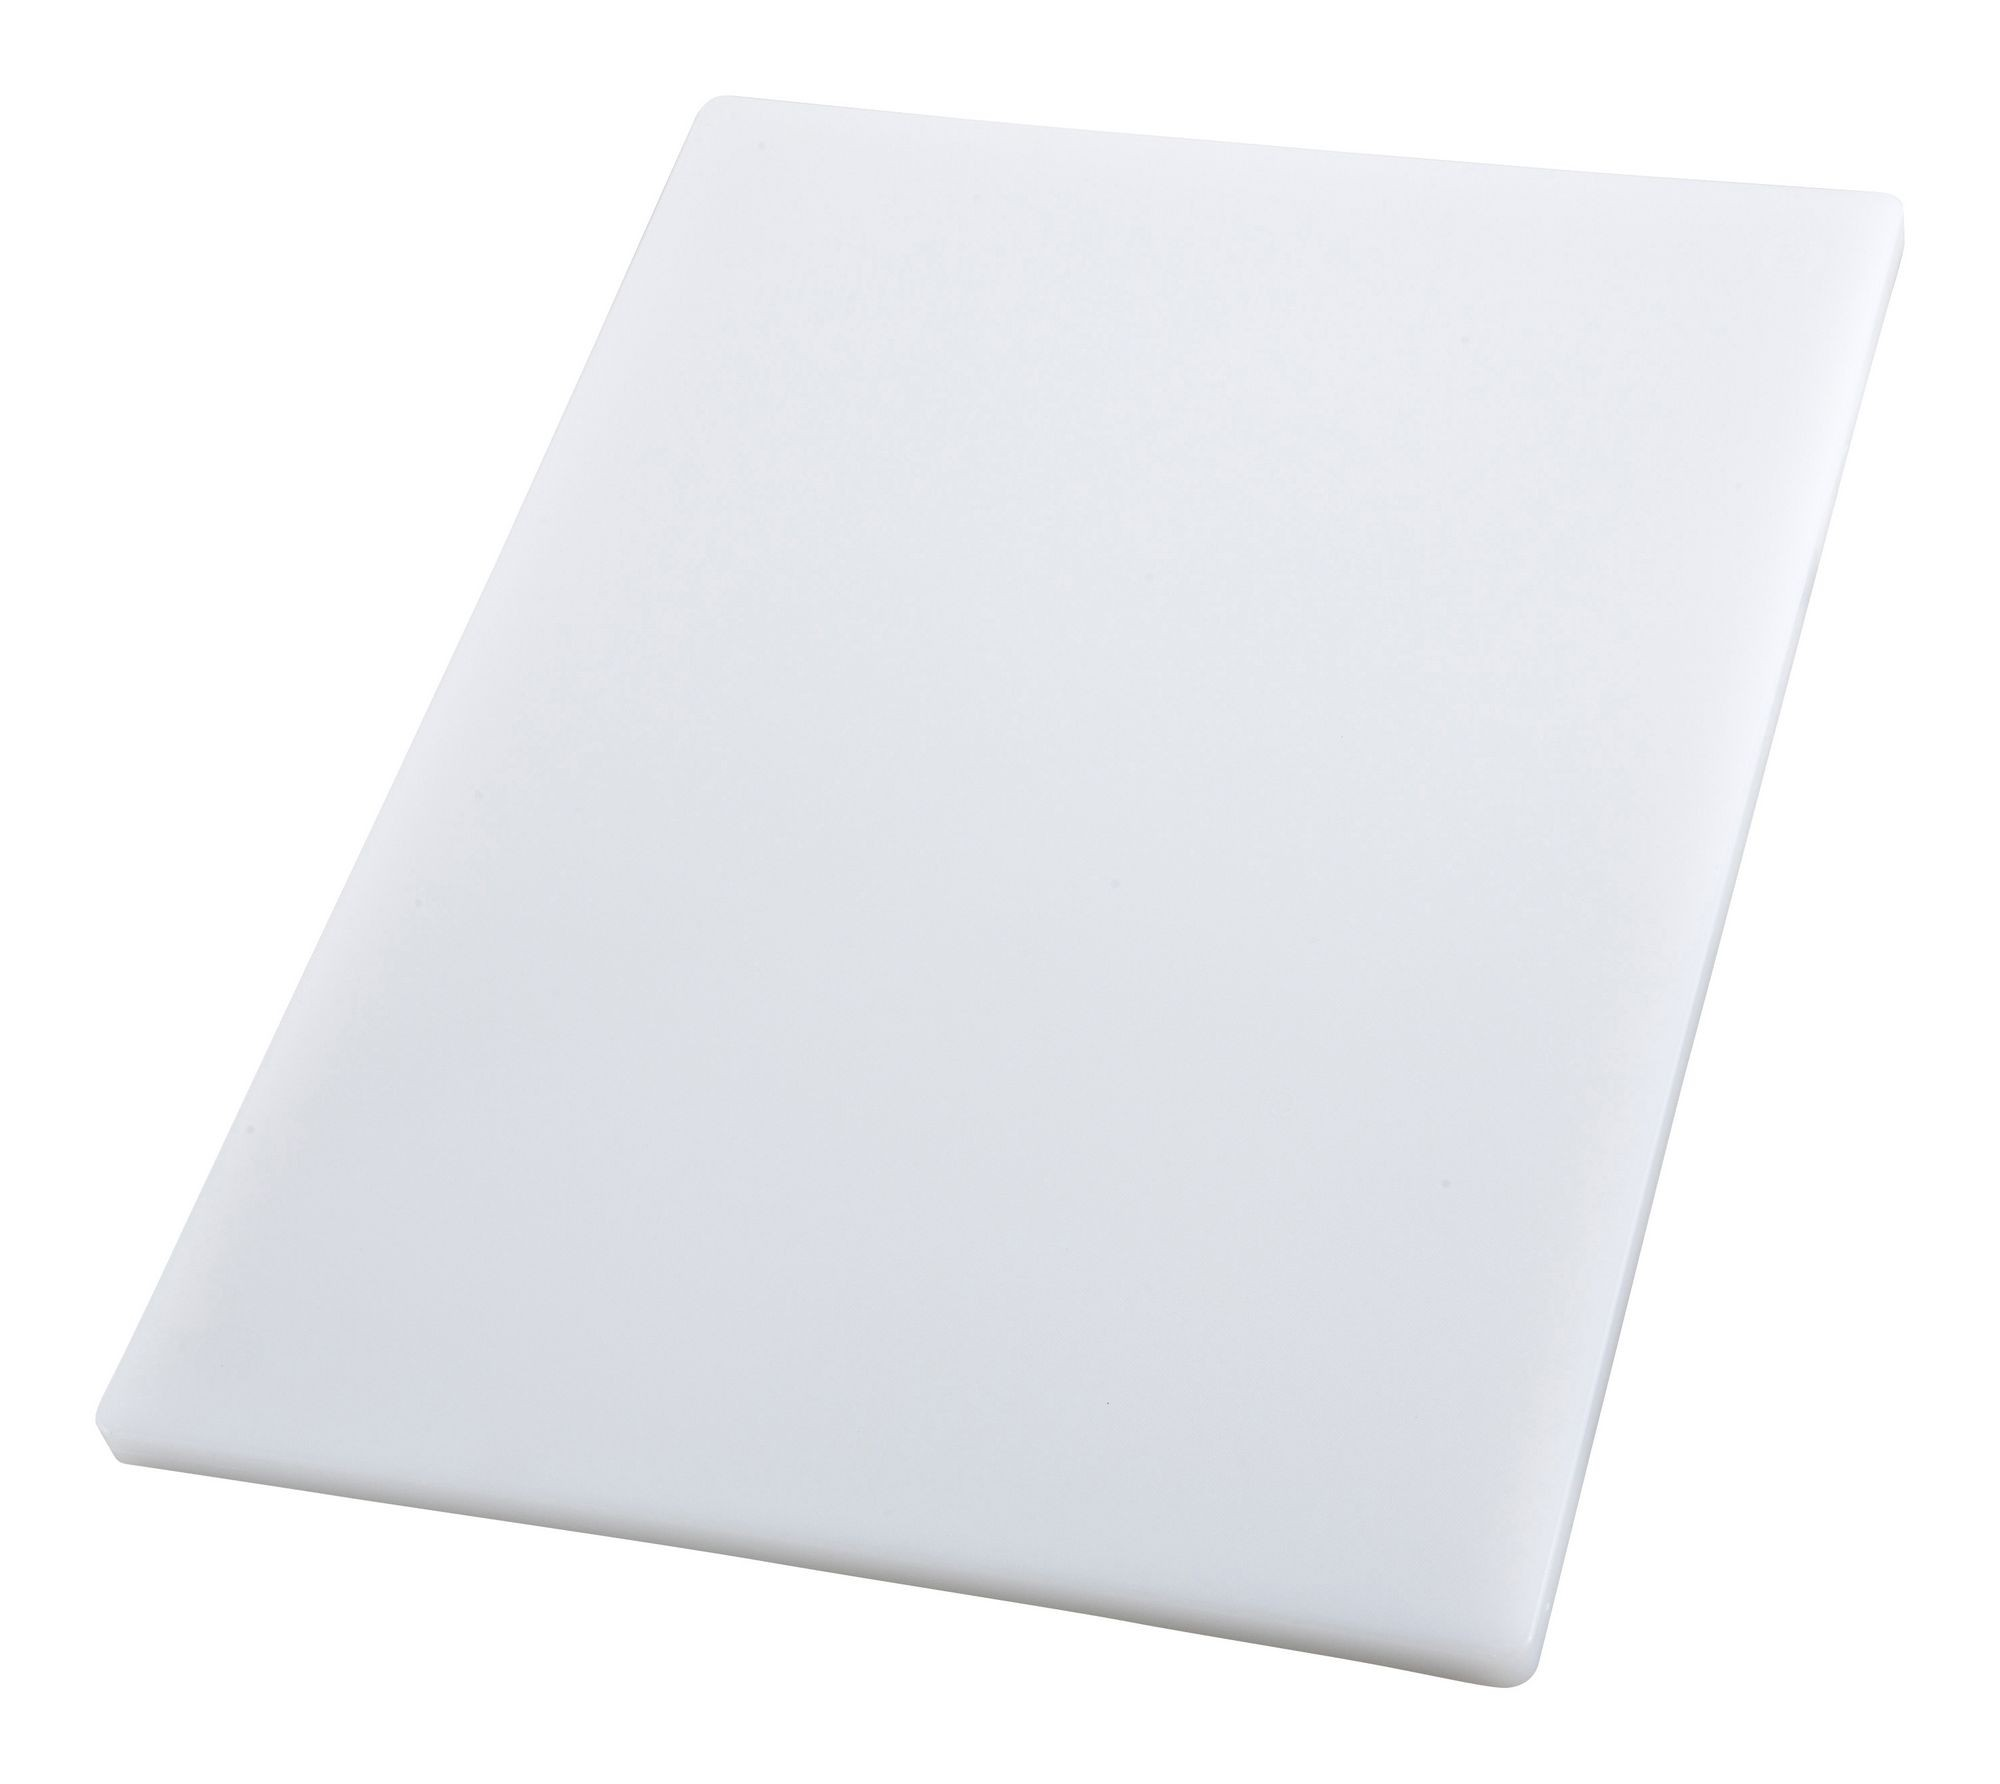 Thick White Cutting Board - 18 X 24 X 3/4